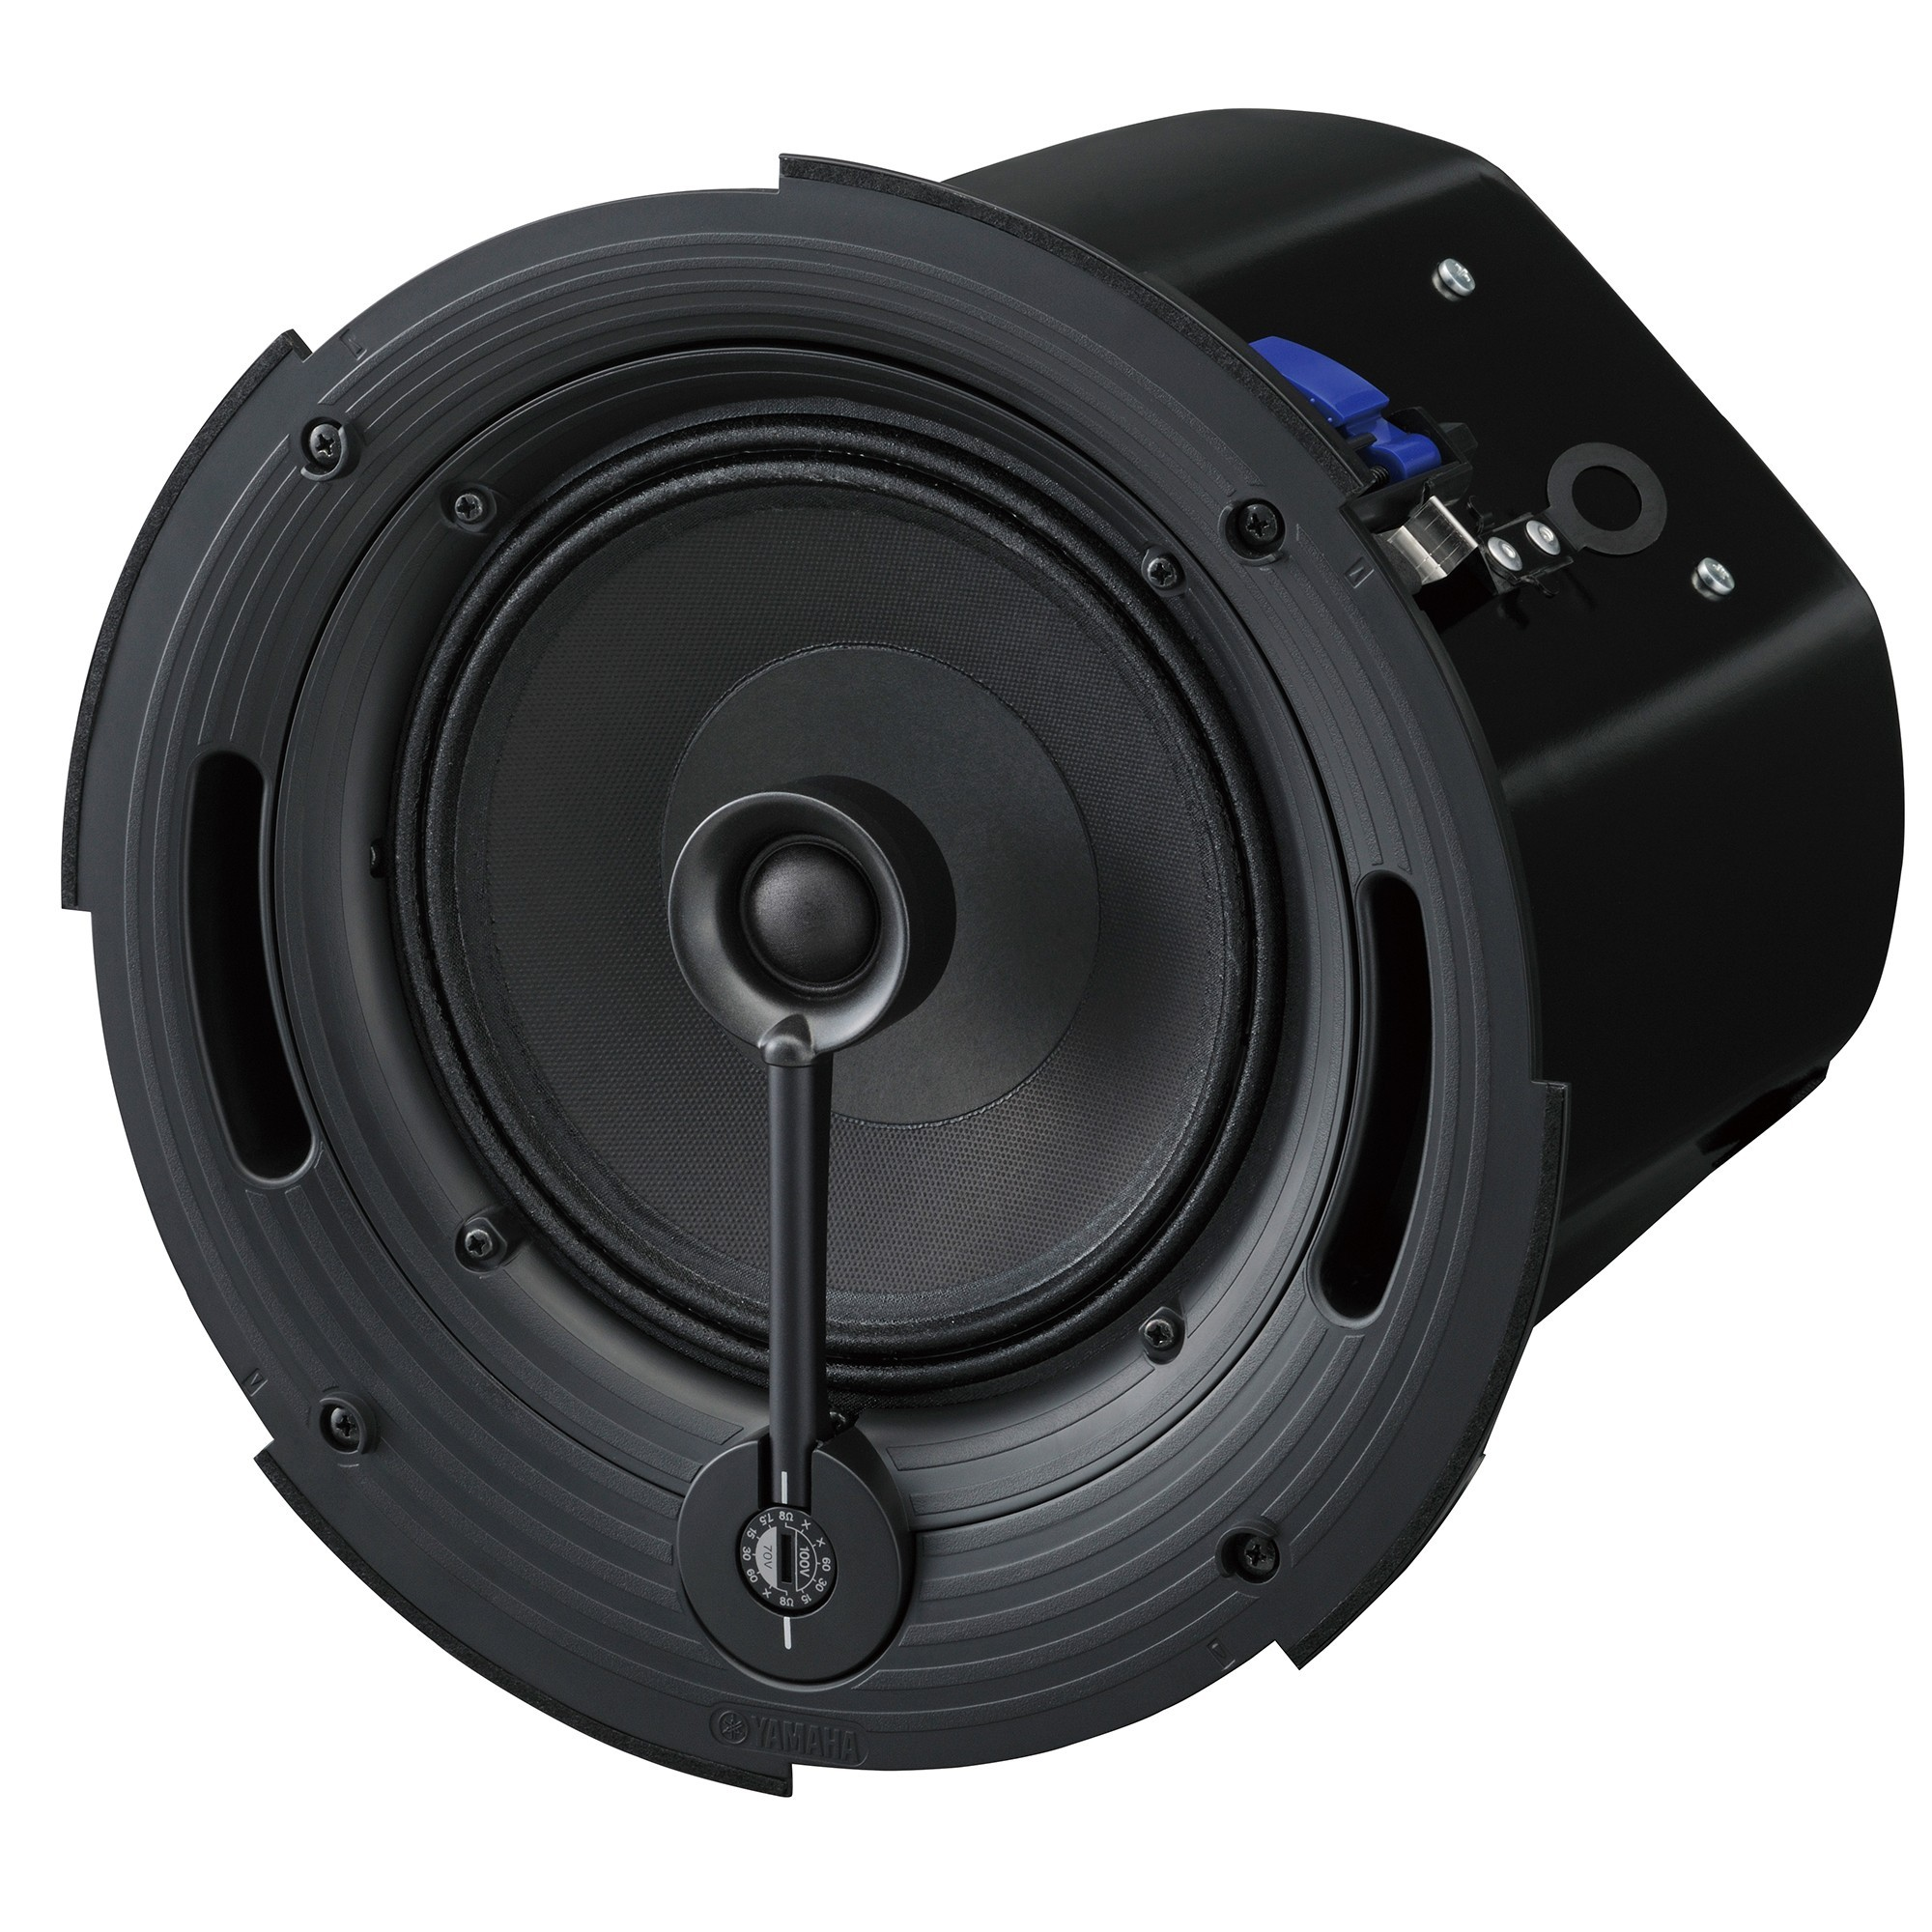 Yamaha conference room sound system with 10 vx series for Yamaha sound system